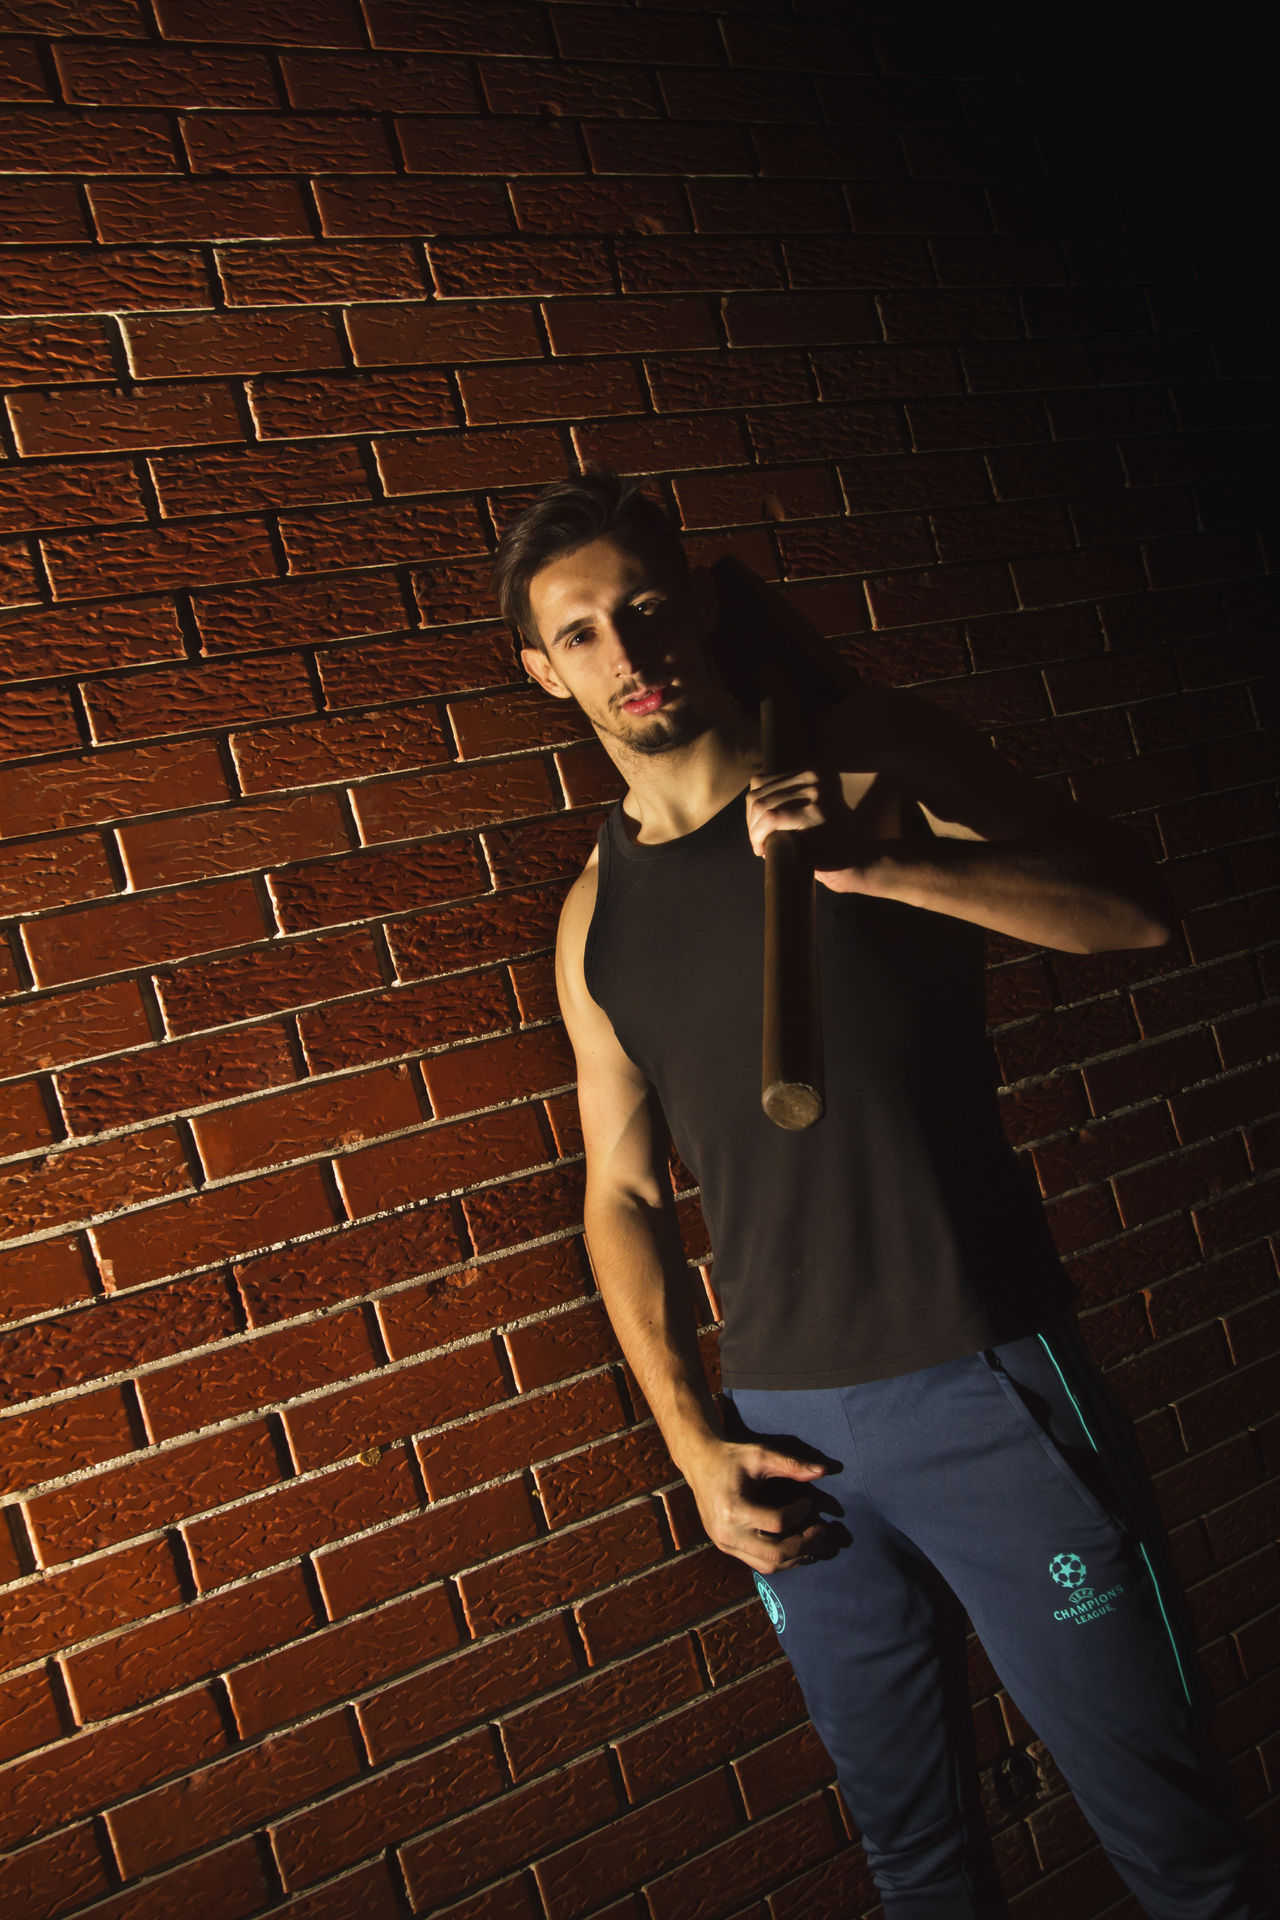 Brick Wall Bricks Brickwall Dumbell EyeEm Best Shots Fit Fitness Gym Indoors  Model Modeling One Person Orange Portrait Pose Posing Sitting Sport Standing Standing Training Week On Eyeem Weight Weights Young Adult